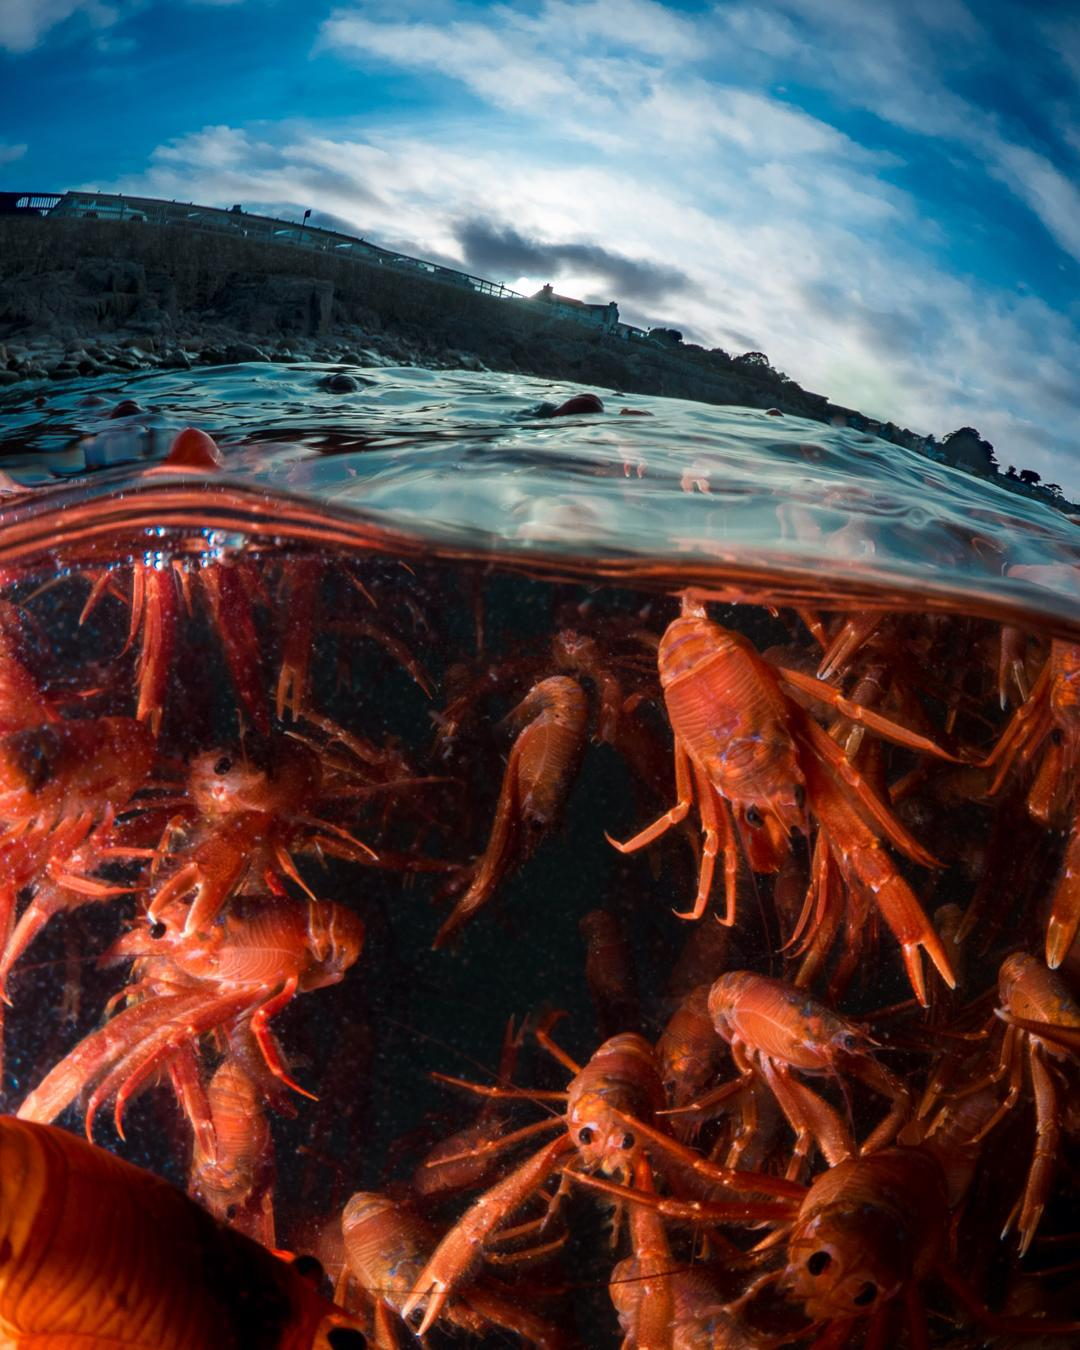 red crabs monterey, red crabs monterey die-off, red crabs monterey mass die-off, red crabs wash ashore along beaches in monterey, el nino red crabs monterey, red crabs monterey el nino strong, Dead red crabs on the shore of Pacific Grove